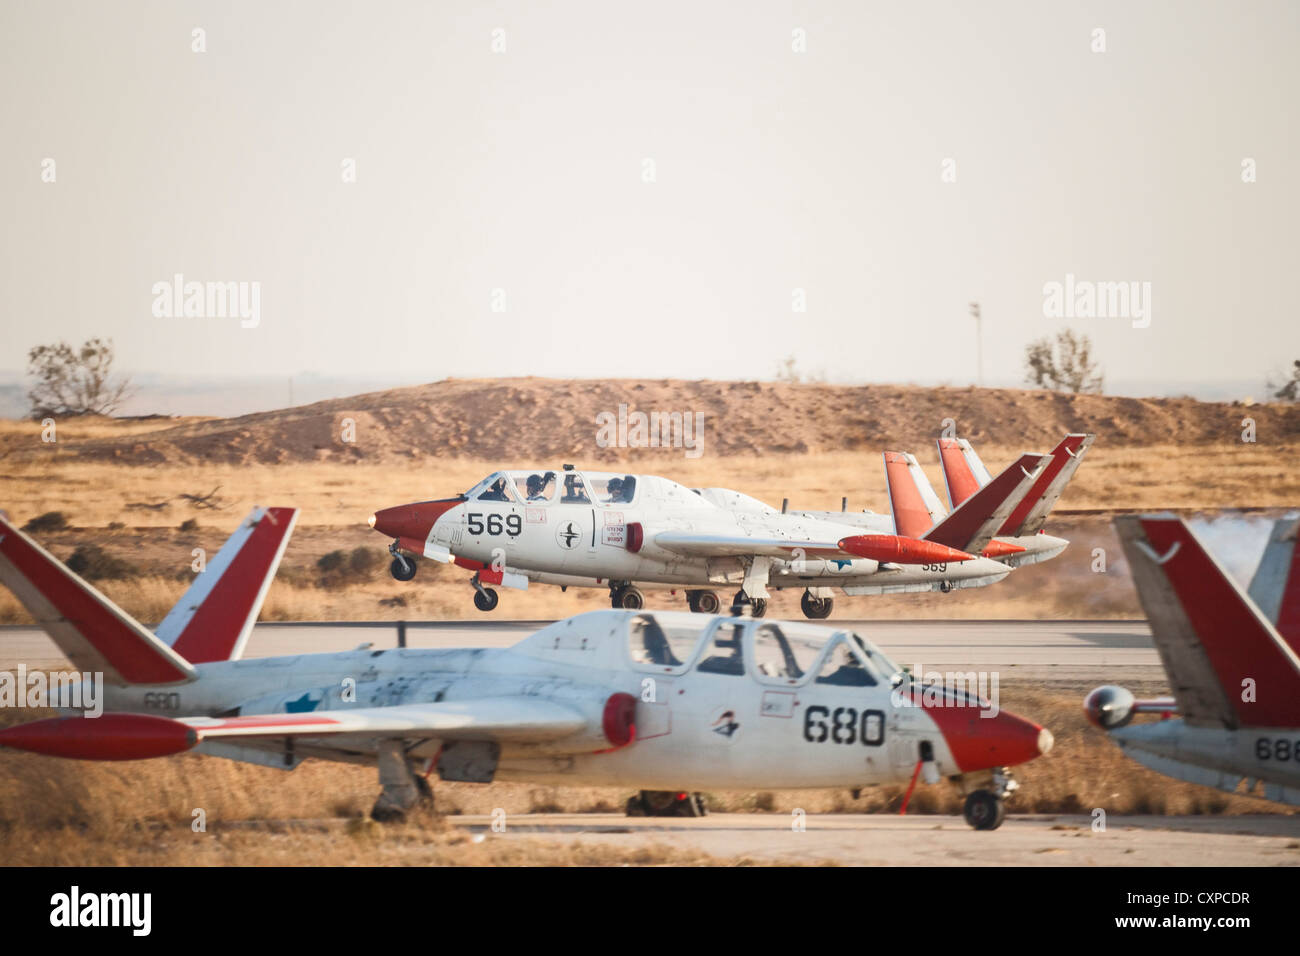 A Fouga Magister (Tzukit) Plane of the Israeli Air force' Aerobatic team lands during an Airshow, December 2008 - Stock Image